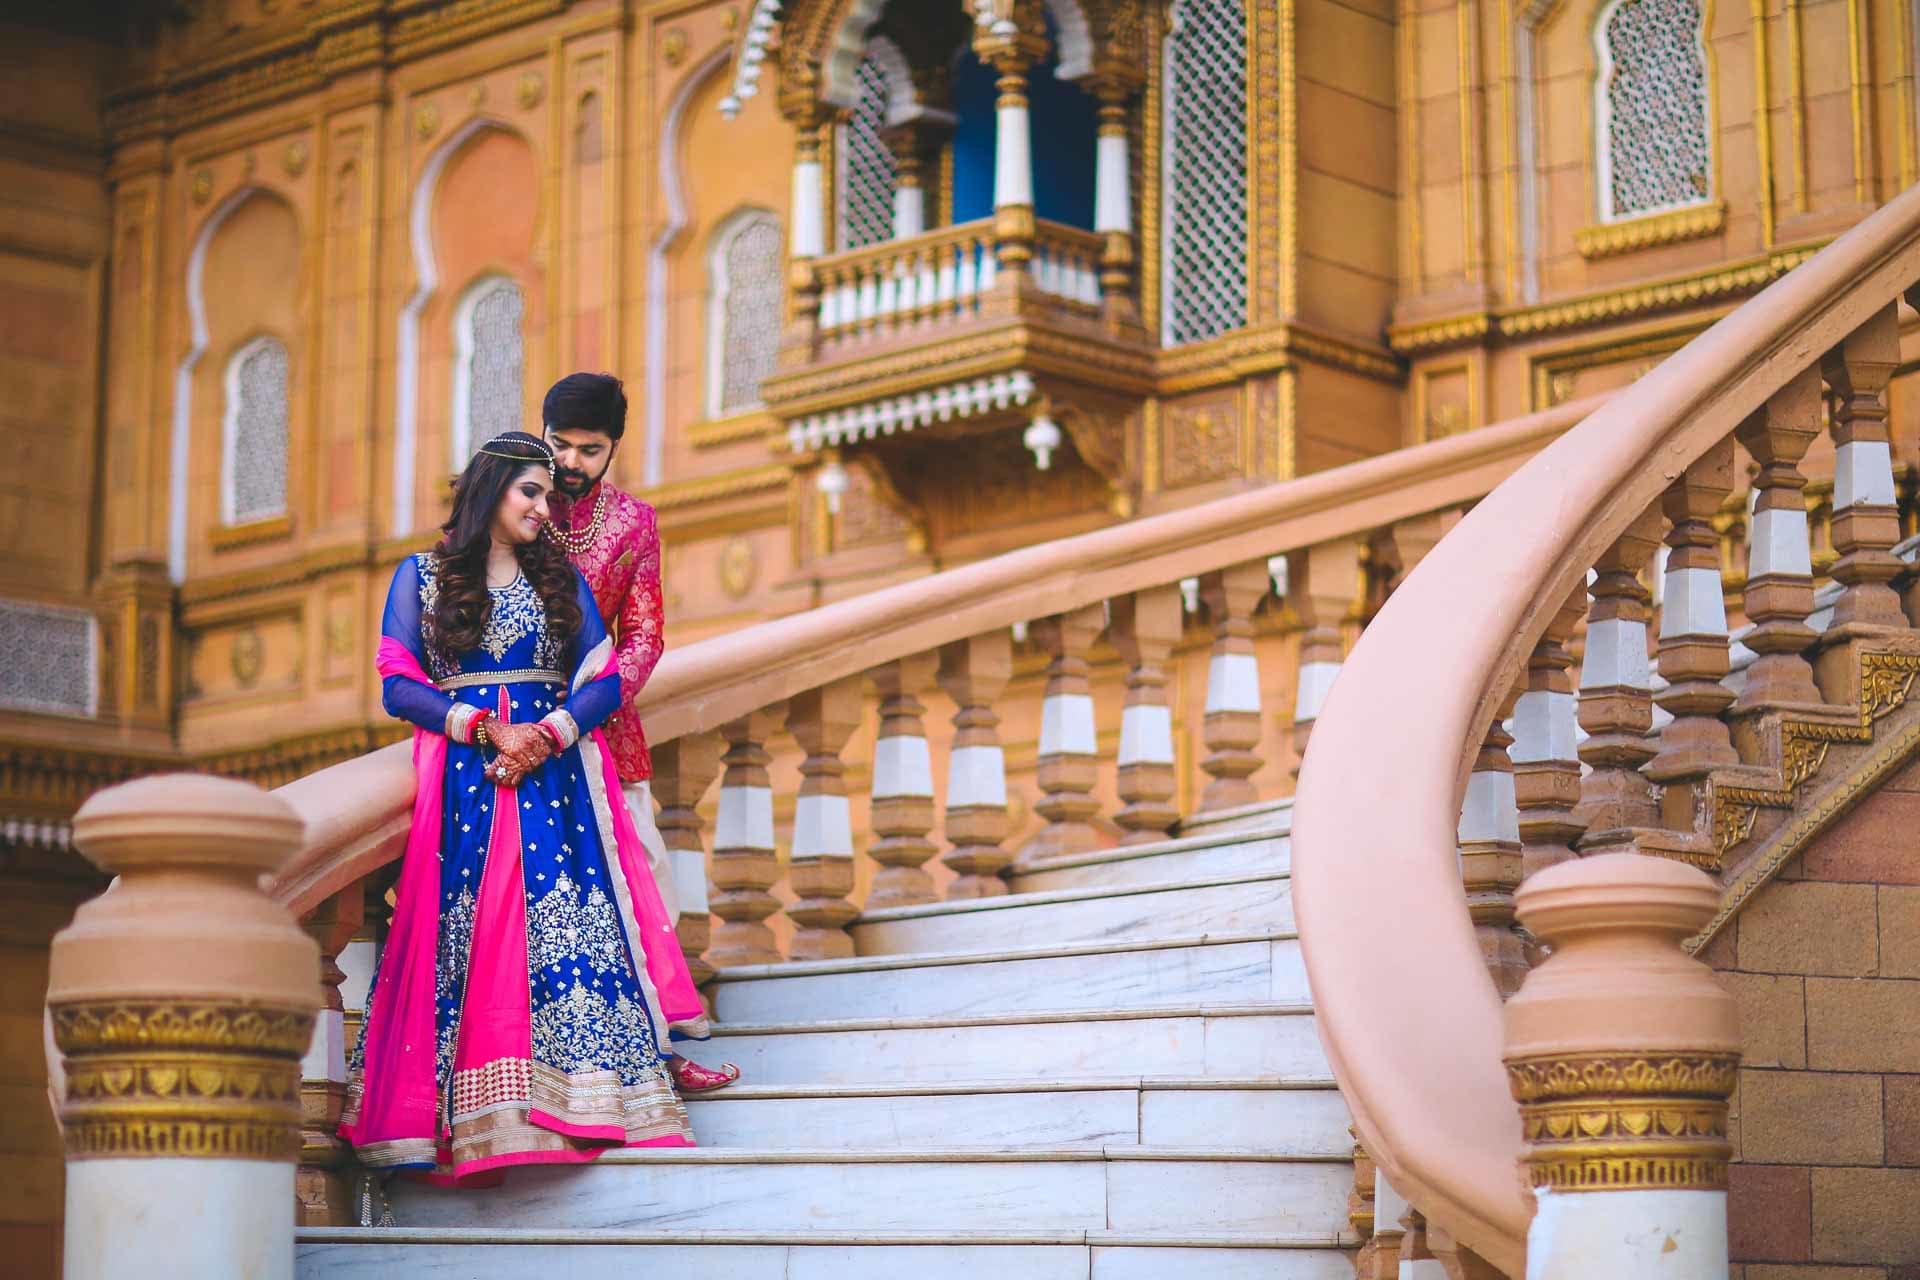 the royal wedding!:akshay sansare photography and films